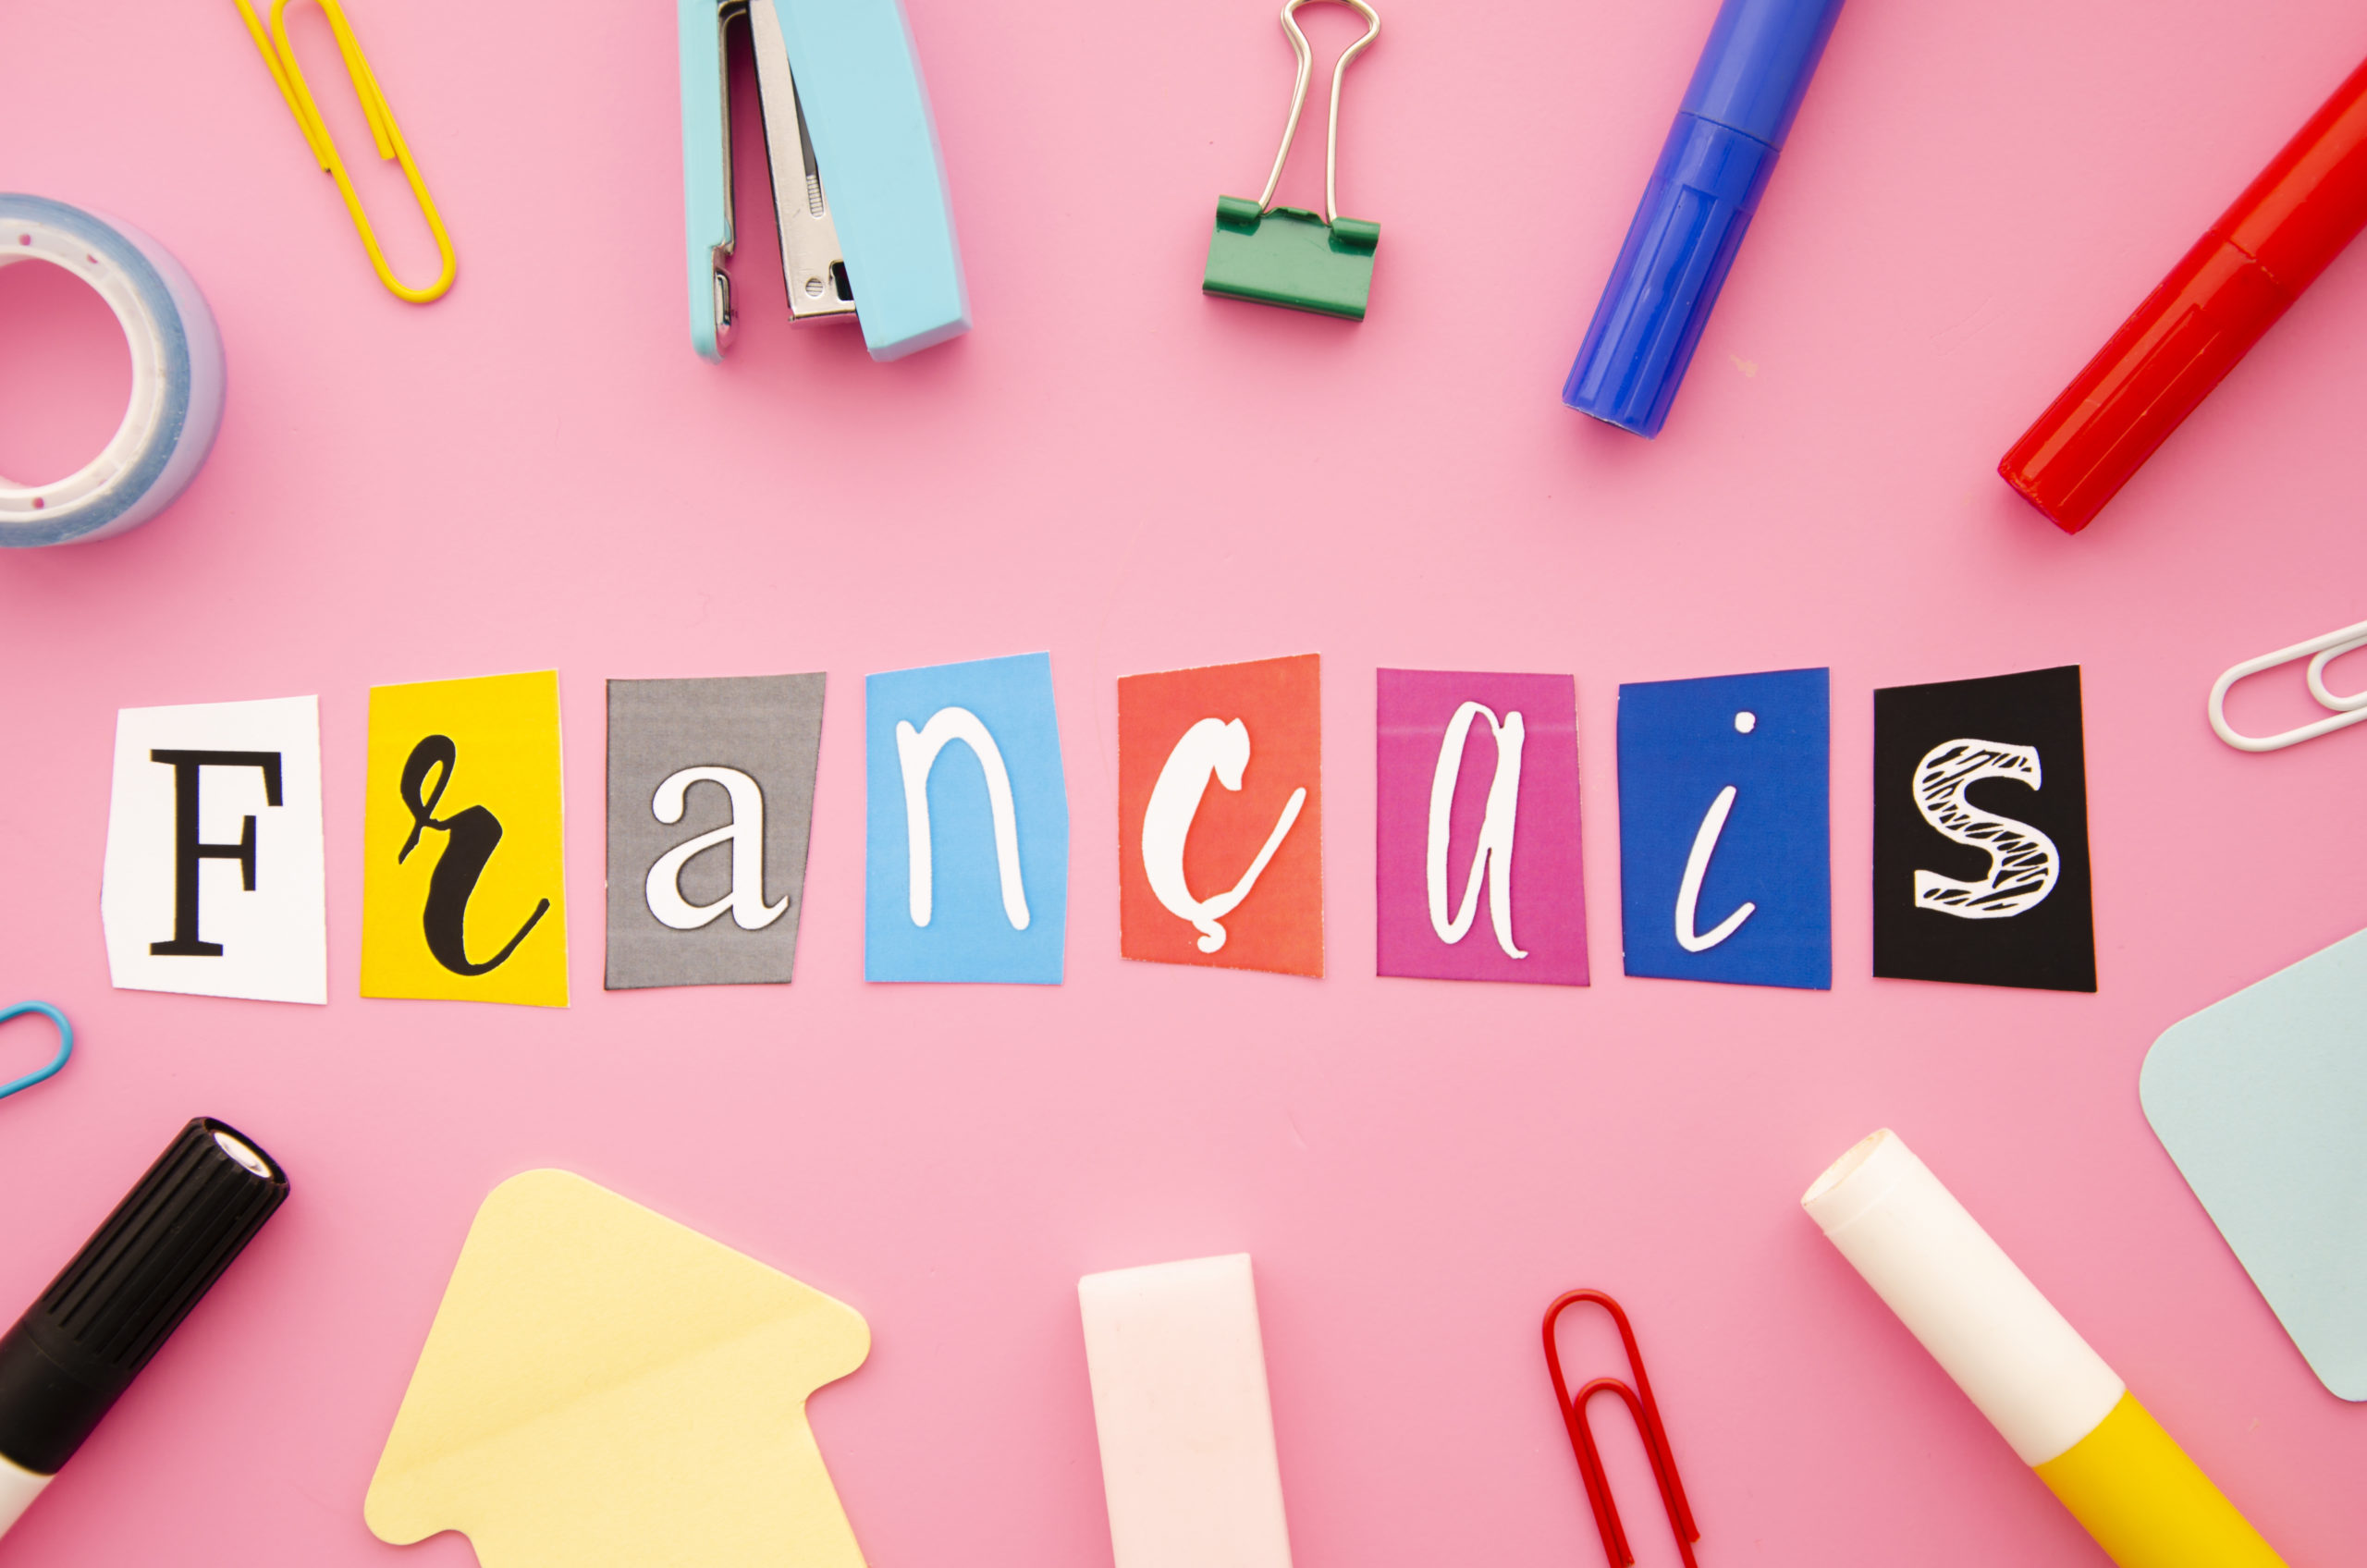 francais-lettering-on-pink-background